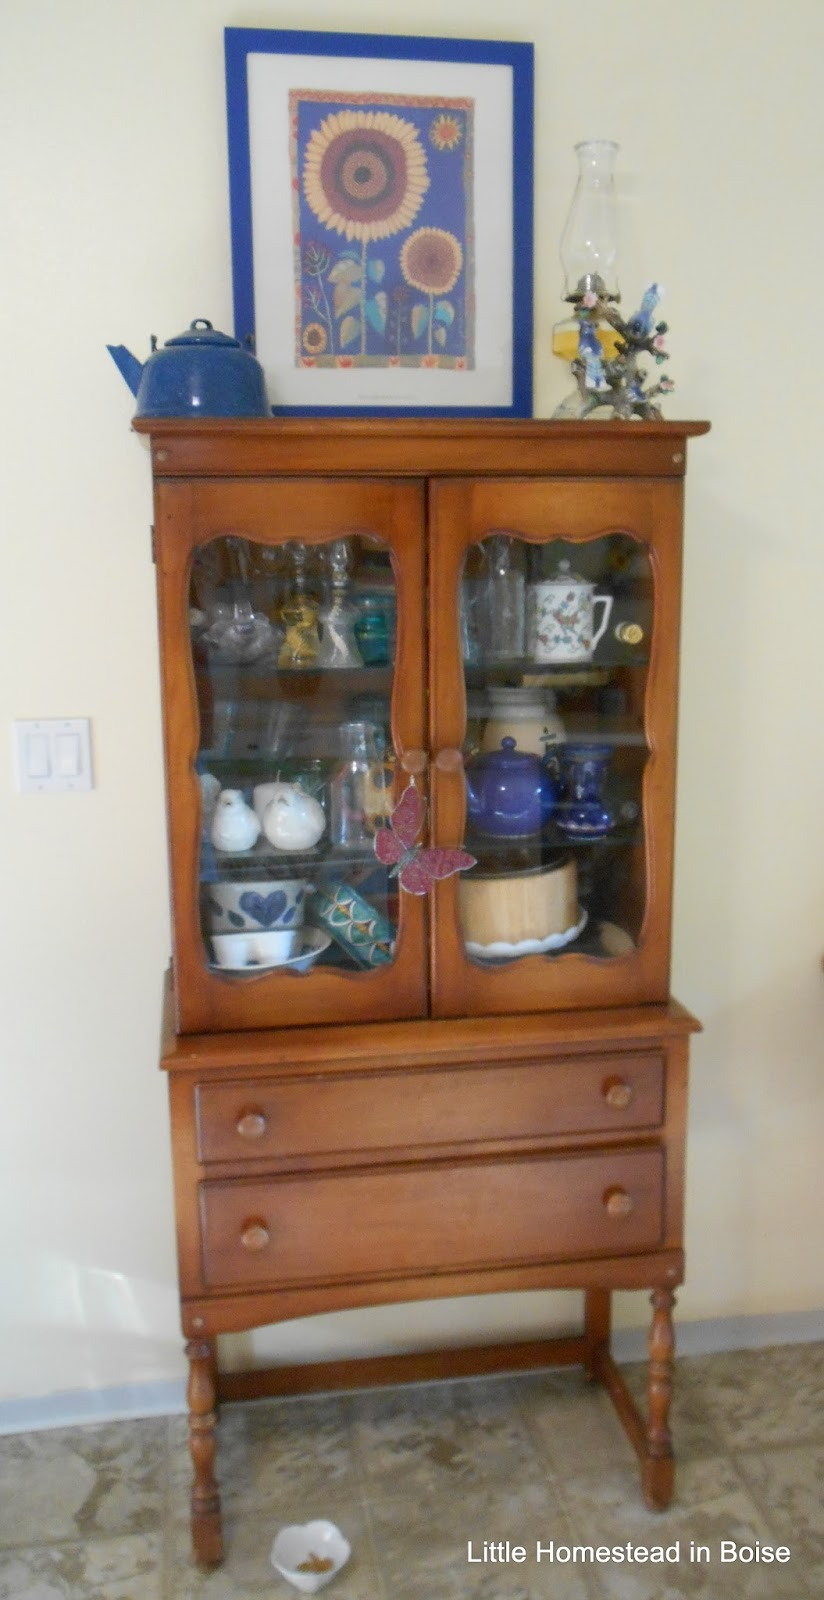 I May Refinish This Thrifted Piece Soon, Itu0027s Either Oak Or Mahogany!  $40.00 At Goodwill!!!